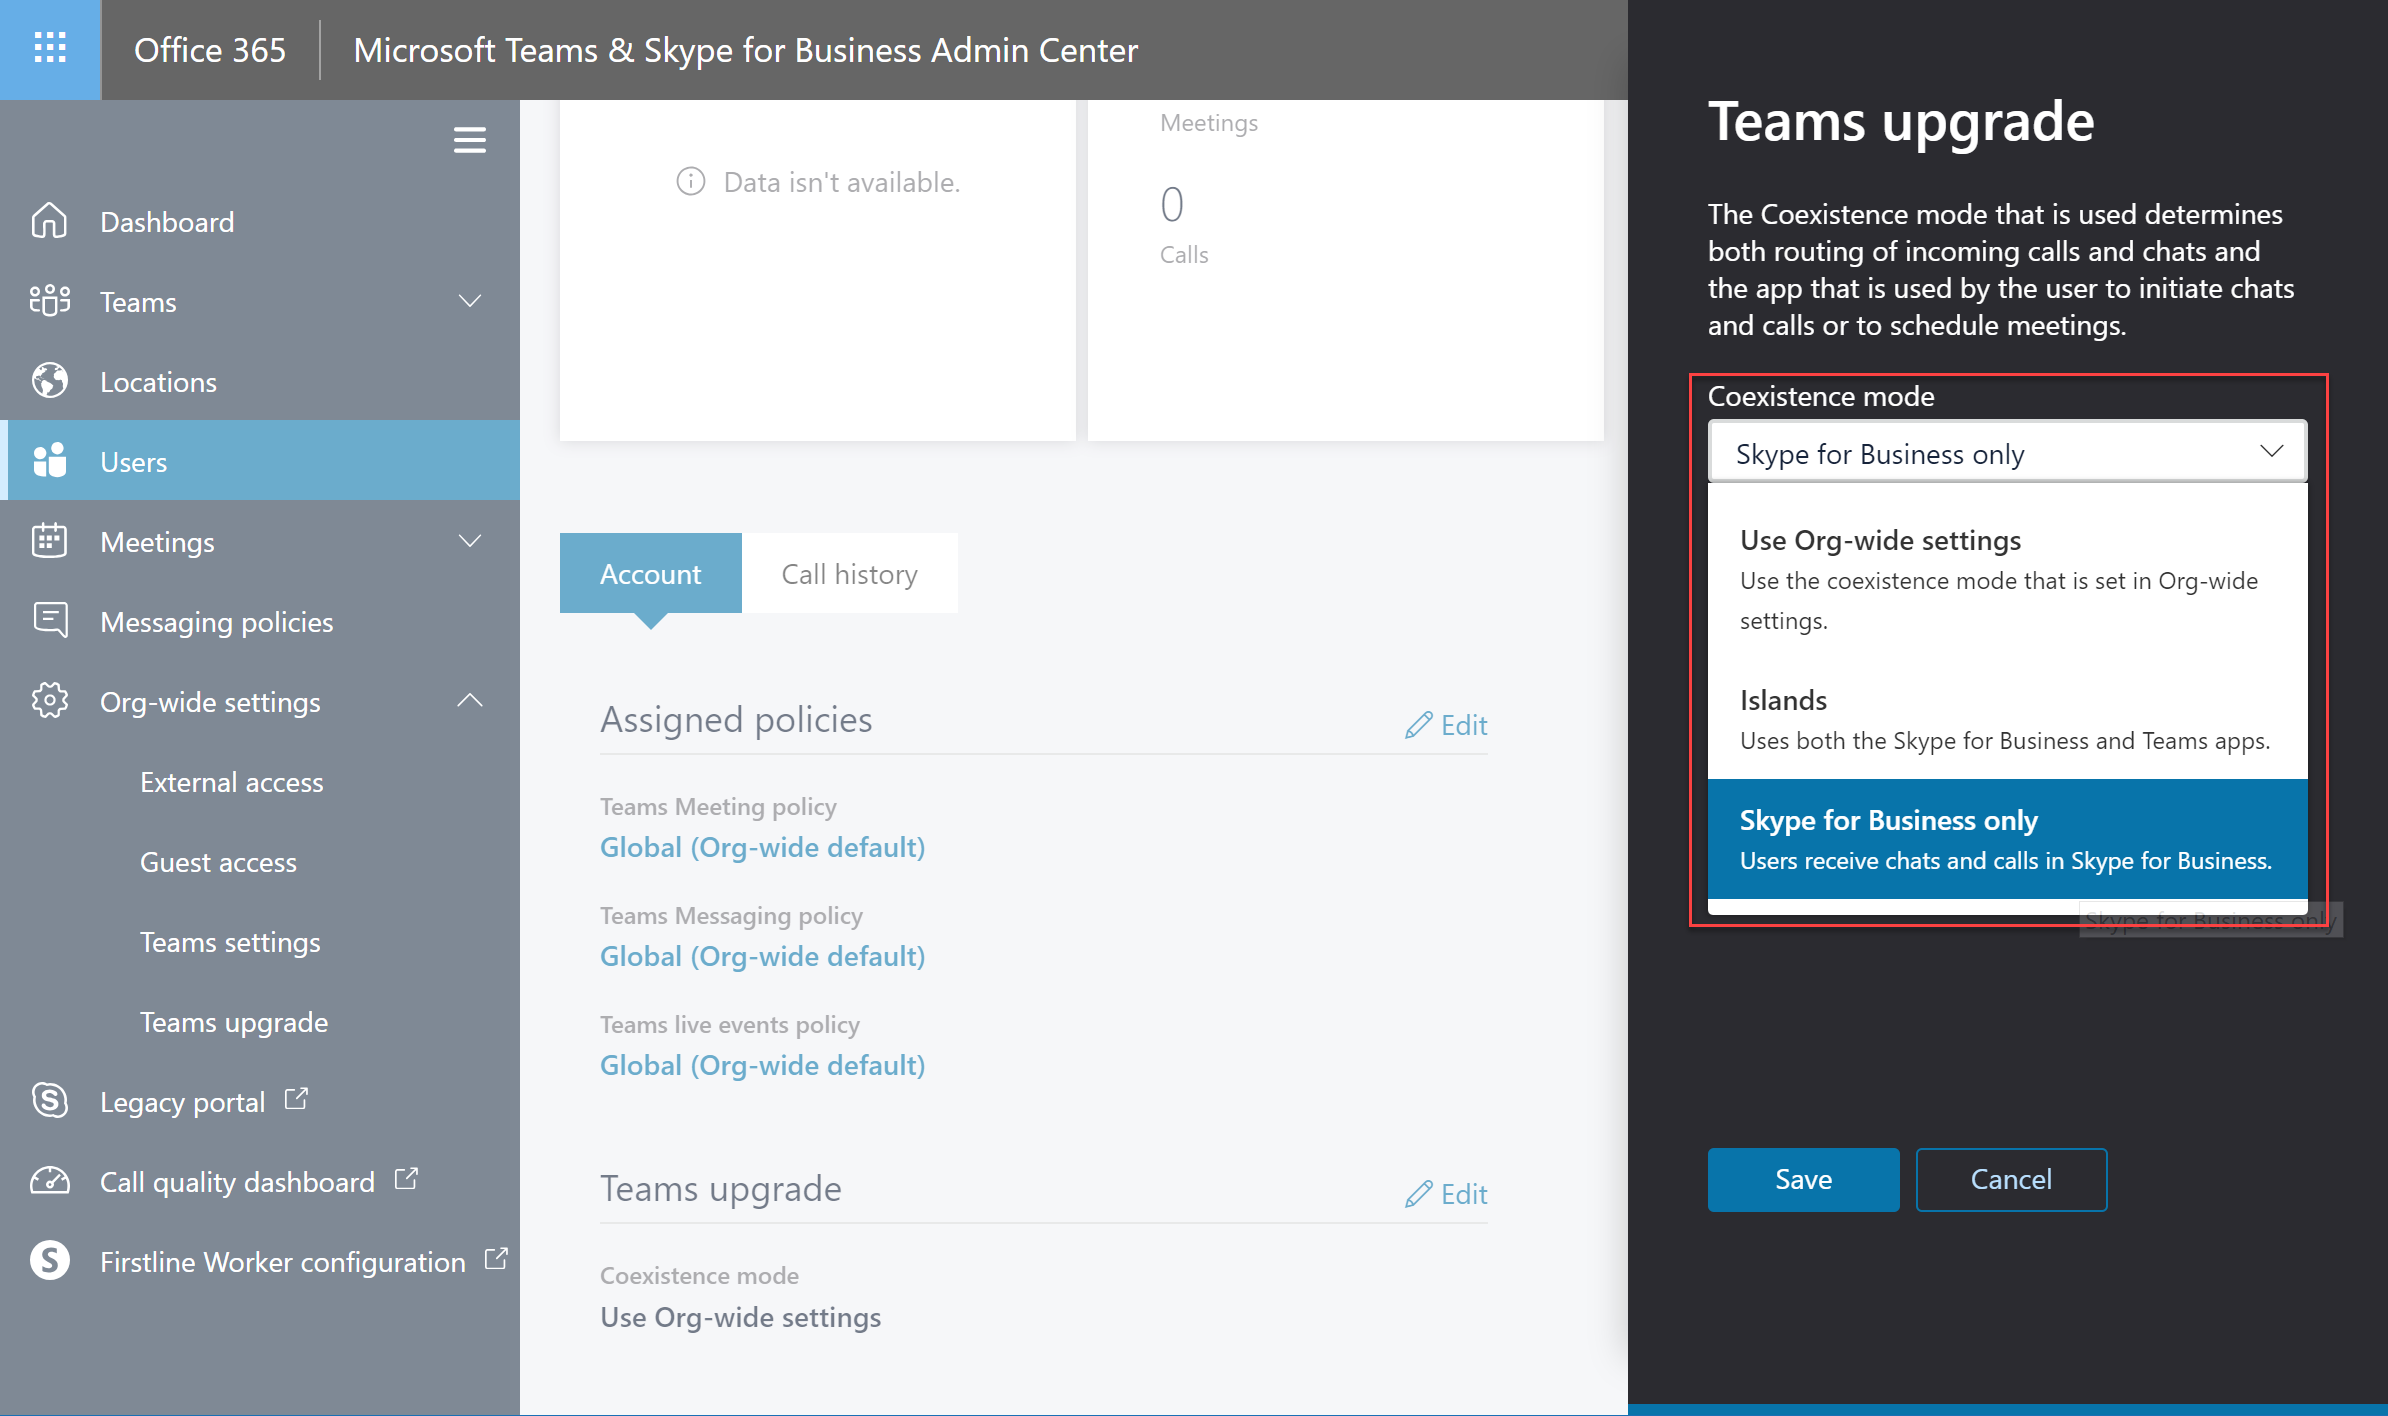 Enabling Skype for Business in a new Teams-Only Office 365